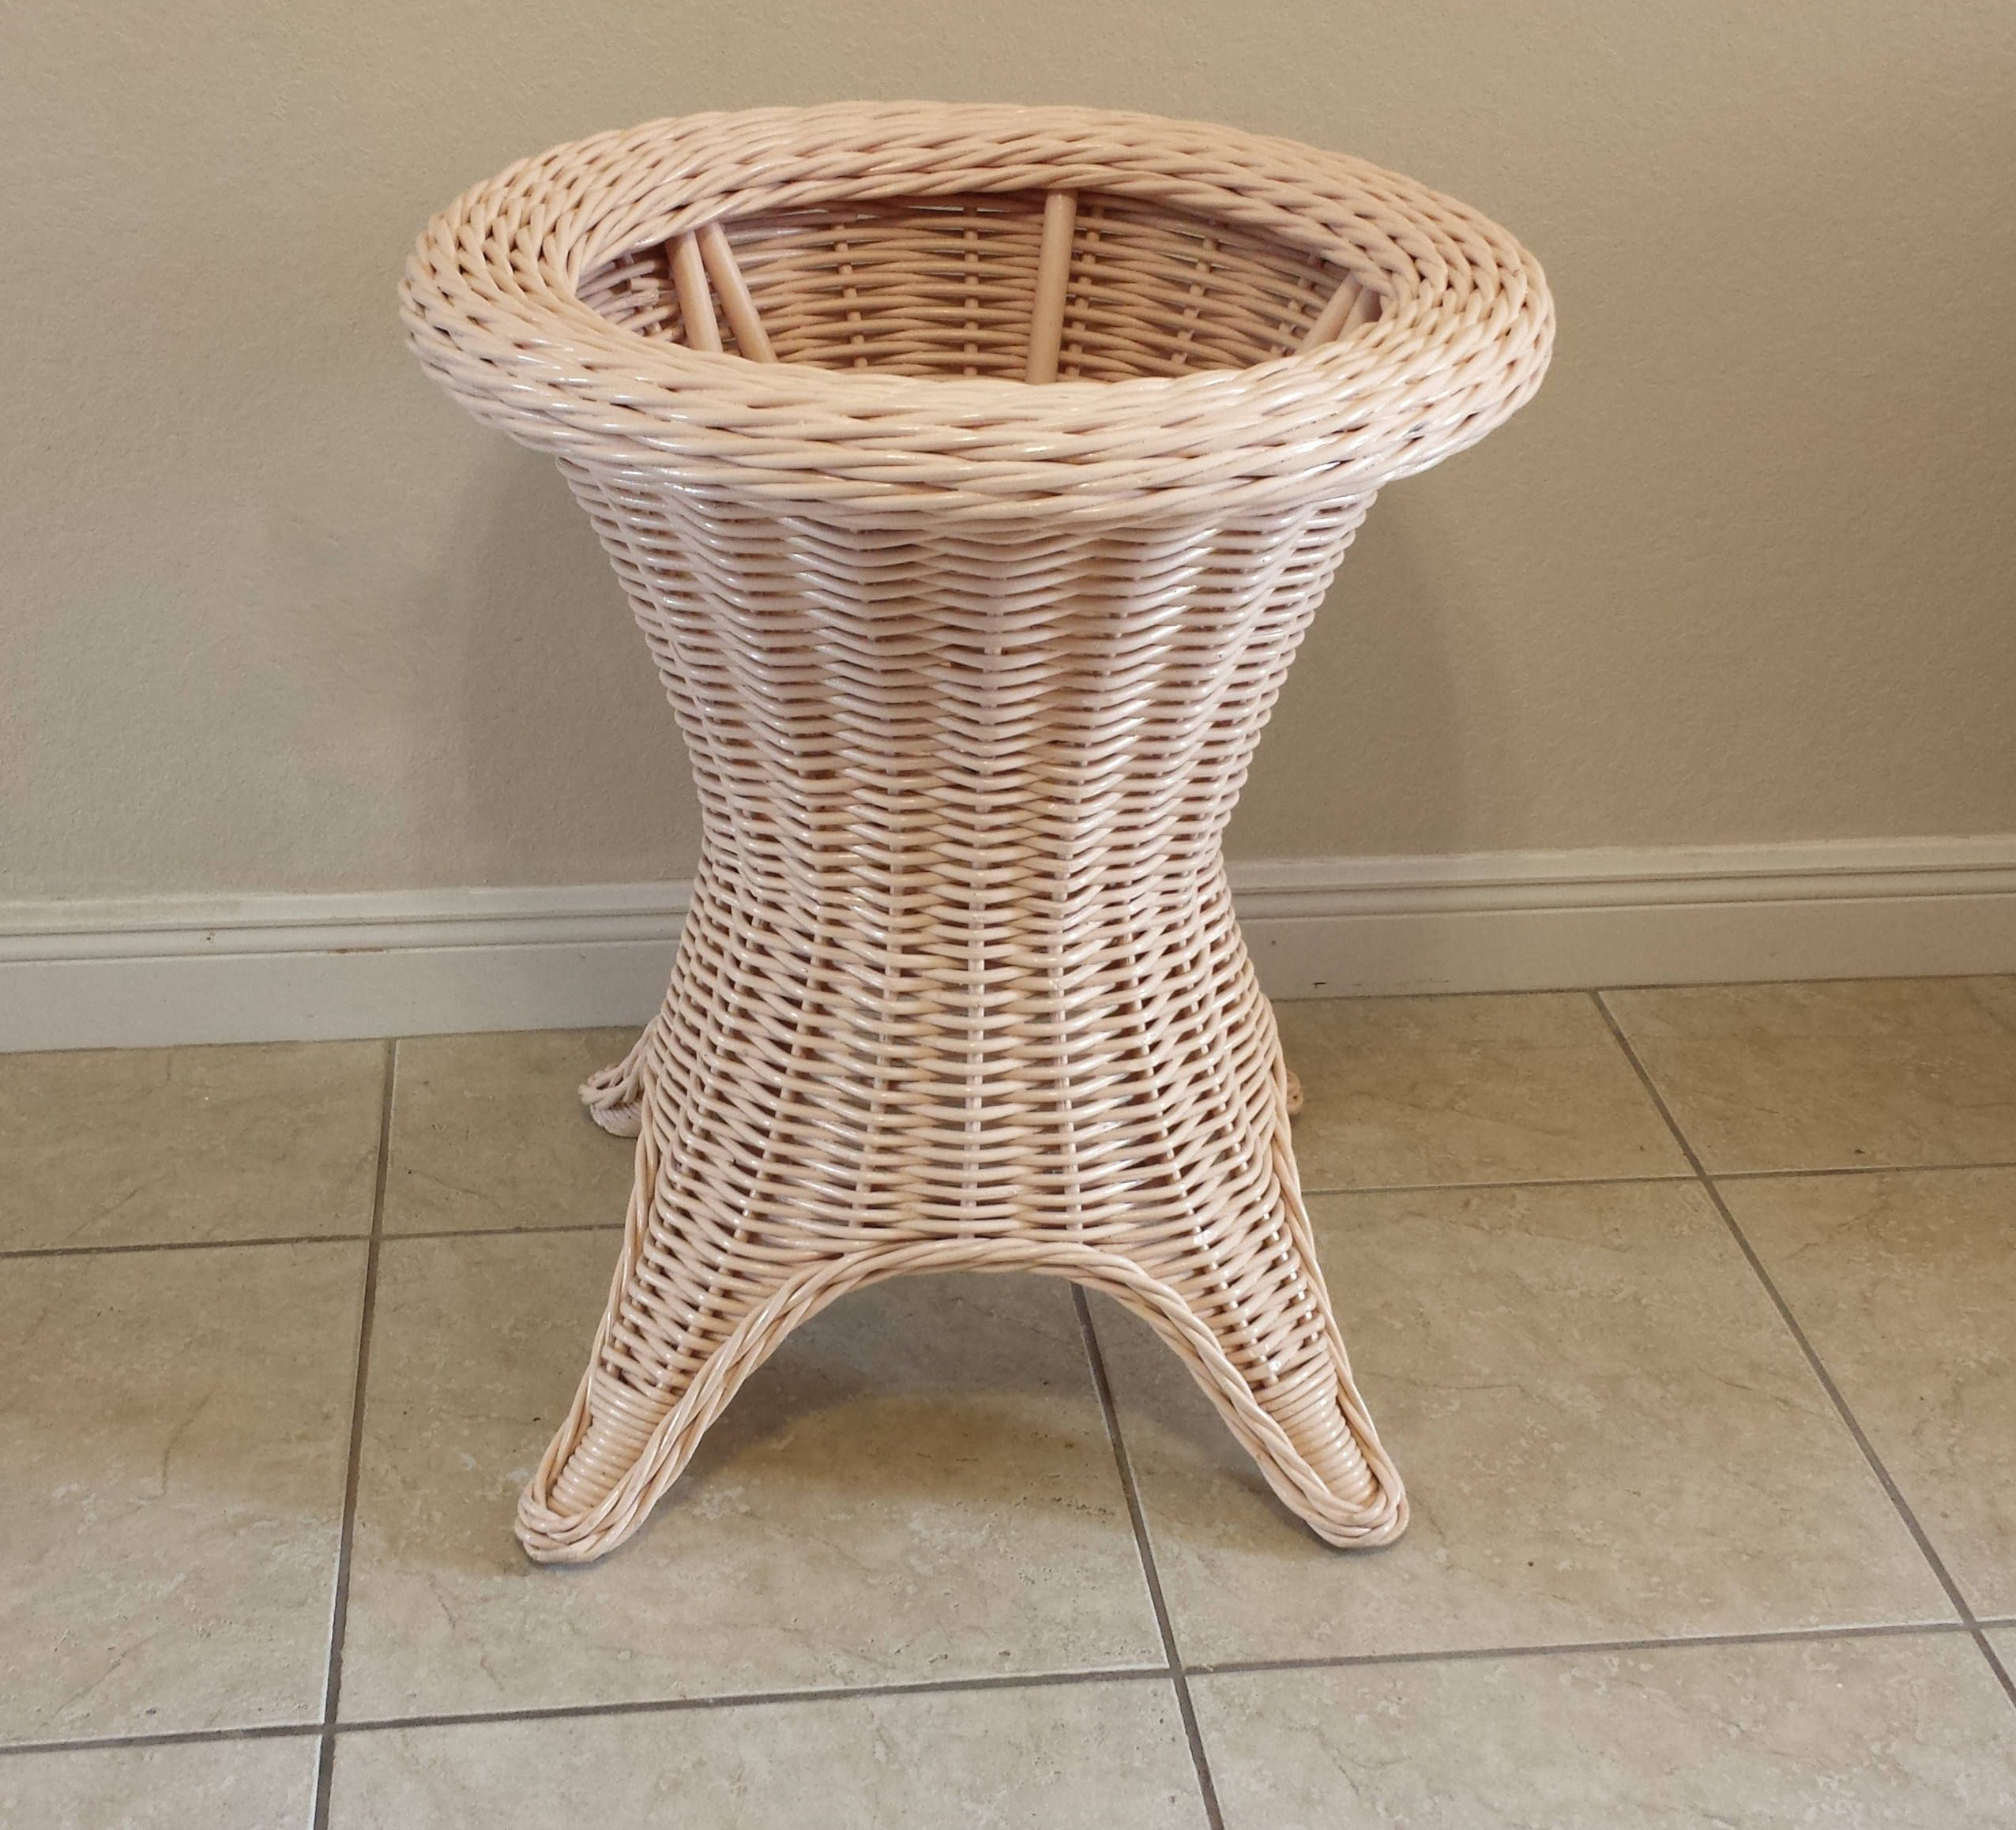 Thick Wicker Round Table Base By DEGFURNITUREDESIGNS On Etsy